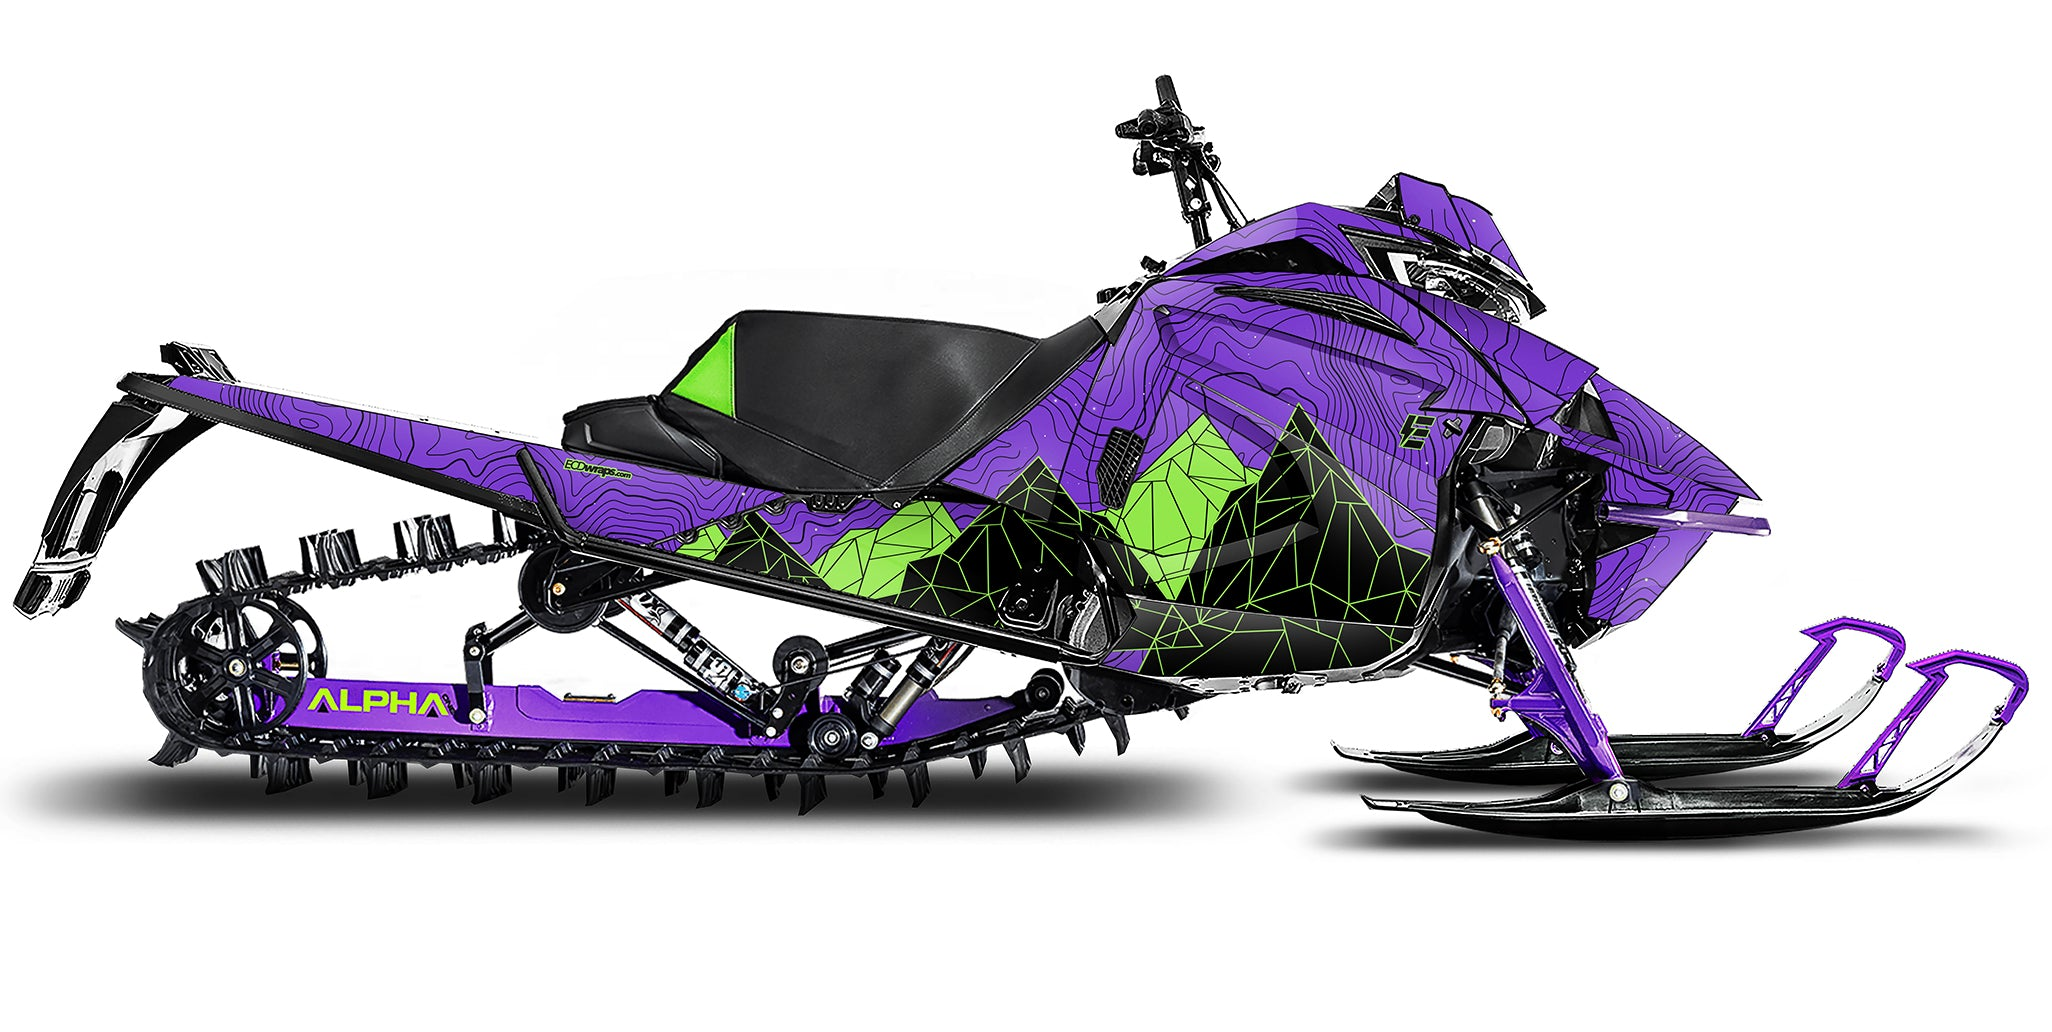 ARCTIC CAT - ADVENTURE